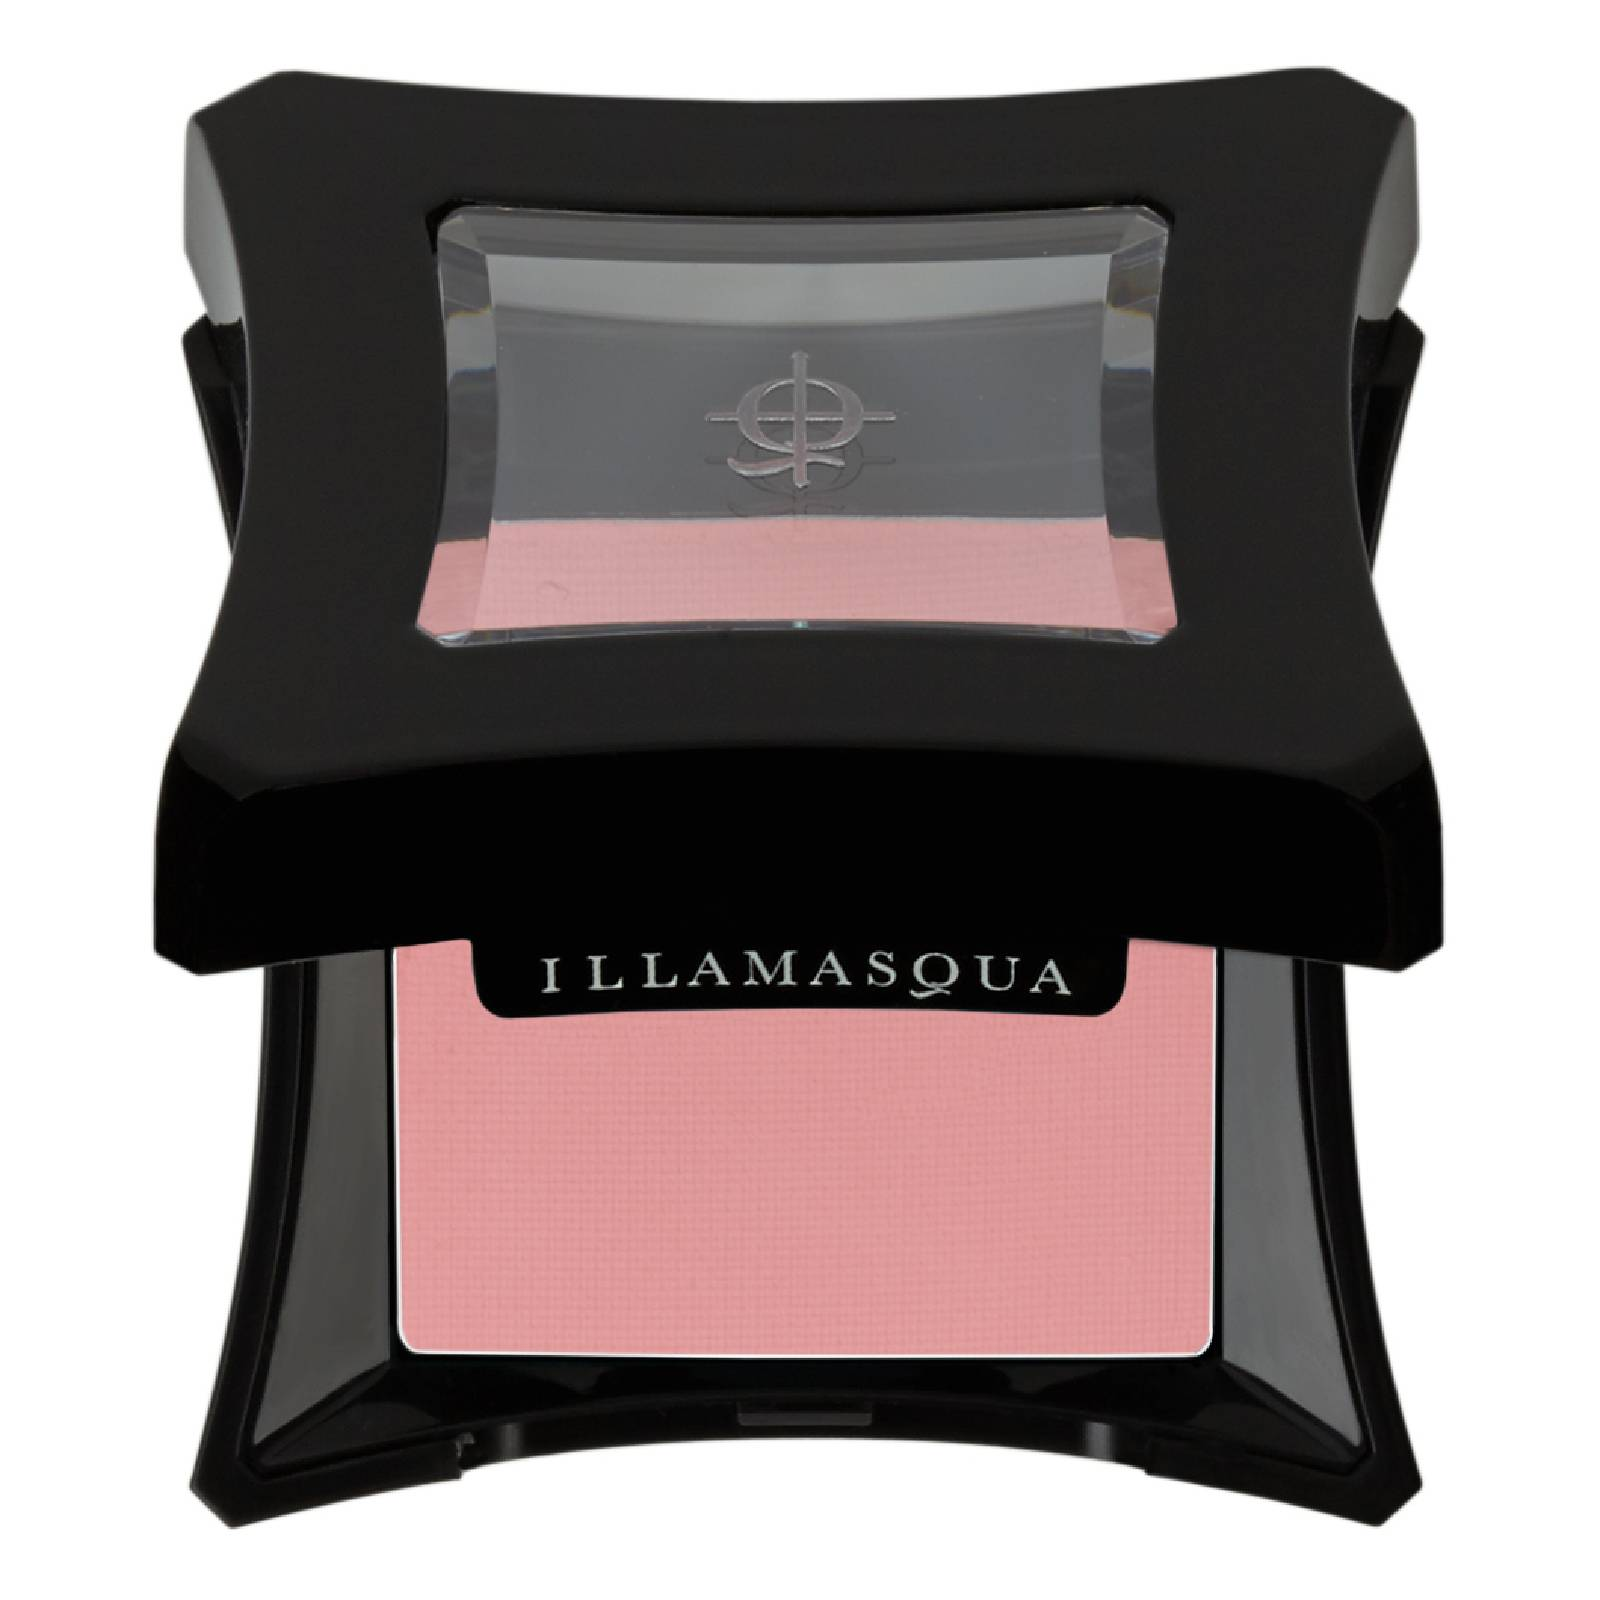 Illamasqua Powder Blusher 4.5g (Various Shades) - Tremble